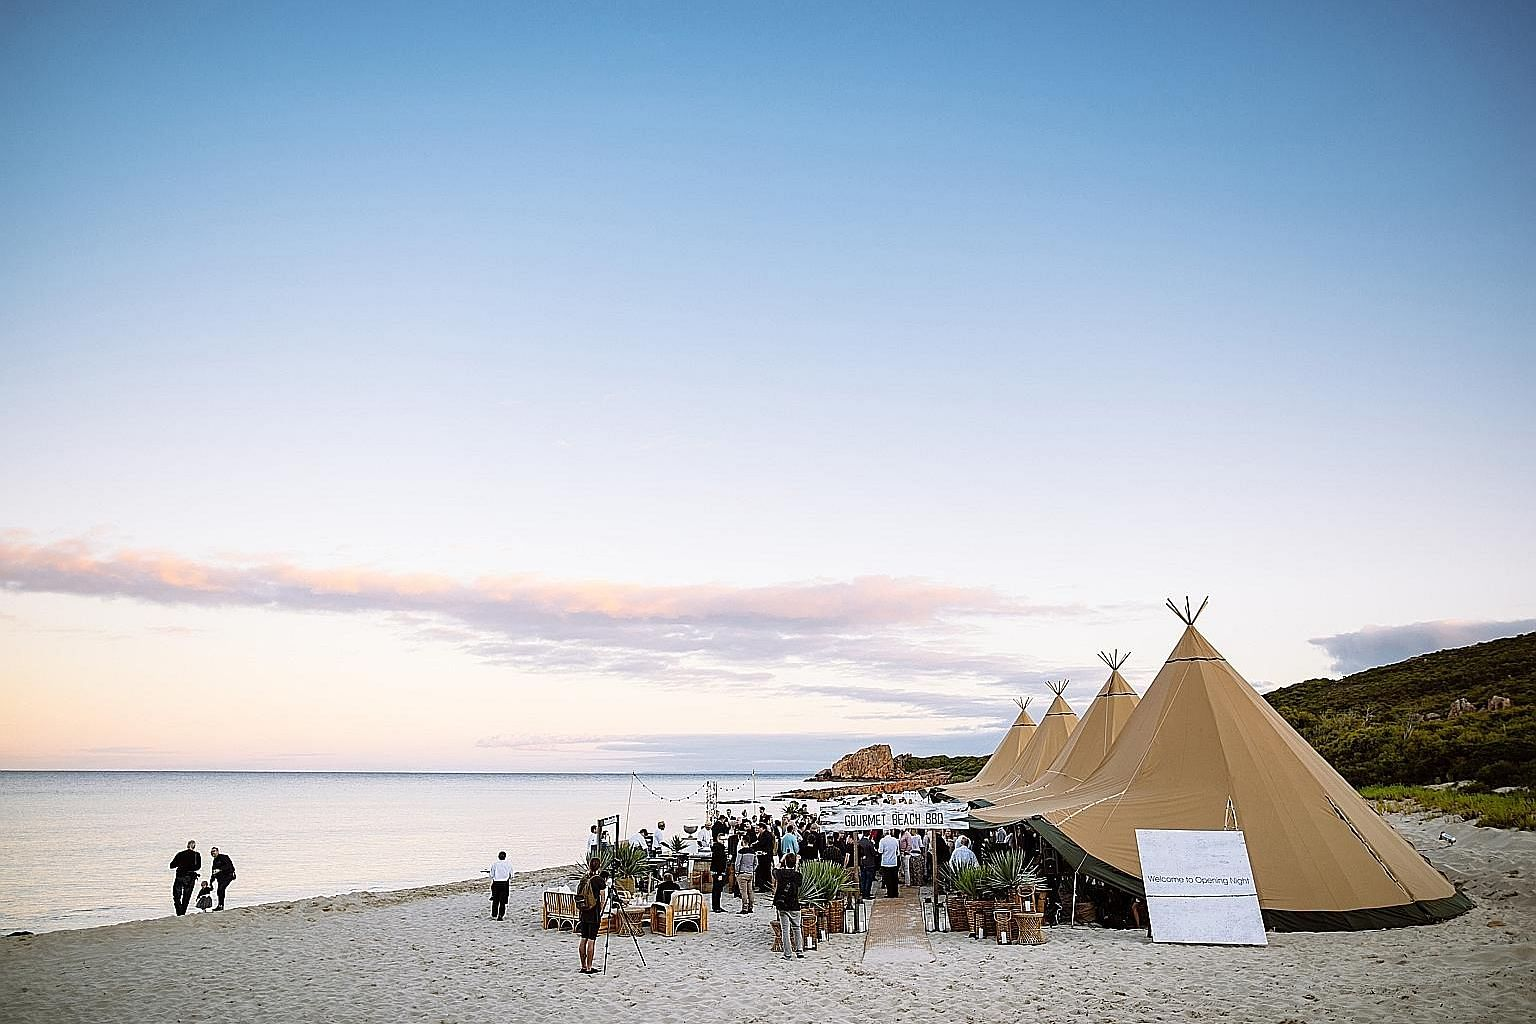 Above: A gourmet beach barbecue as part of the Western Australia Gourmet Escape festival, a 10-day event running from Nov 8 to 17. Below: Festival events may include a feast of freshly shucked oysters. There will also be cooking workshops and world-c